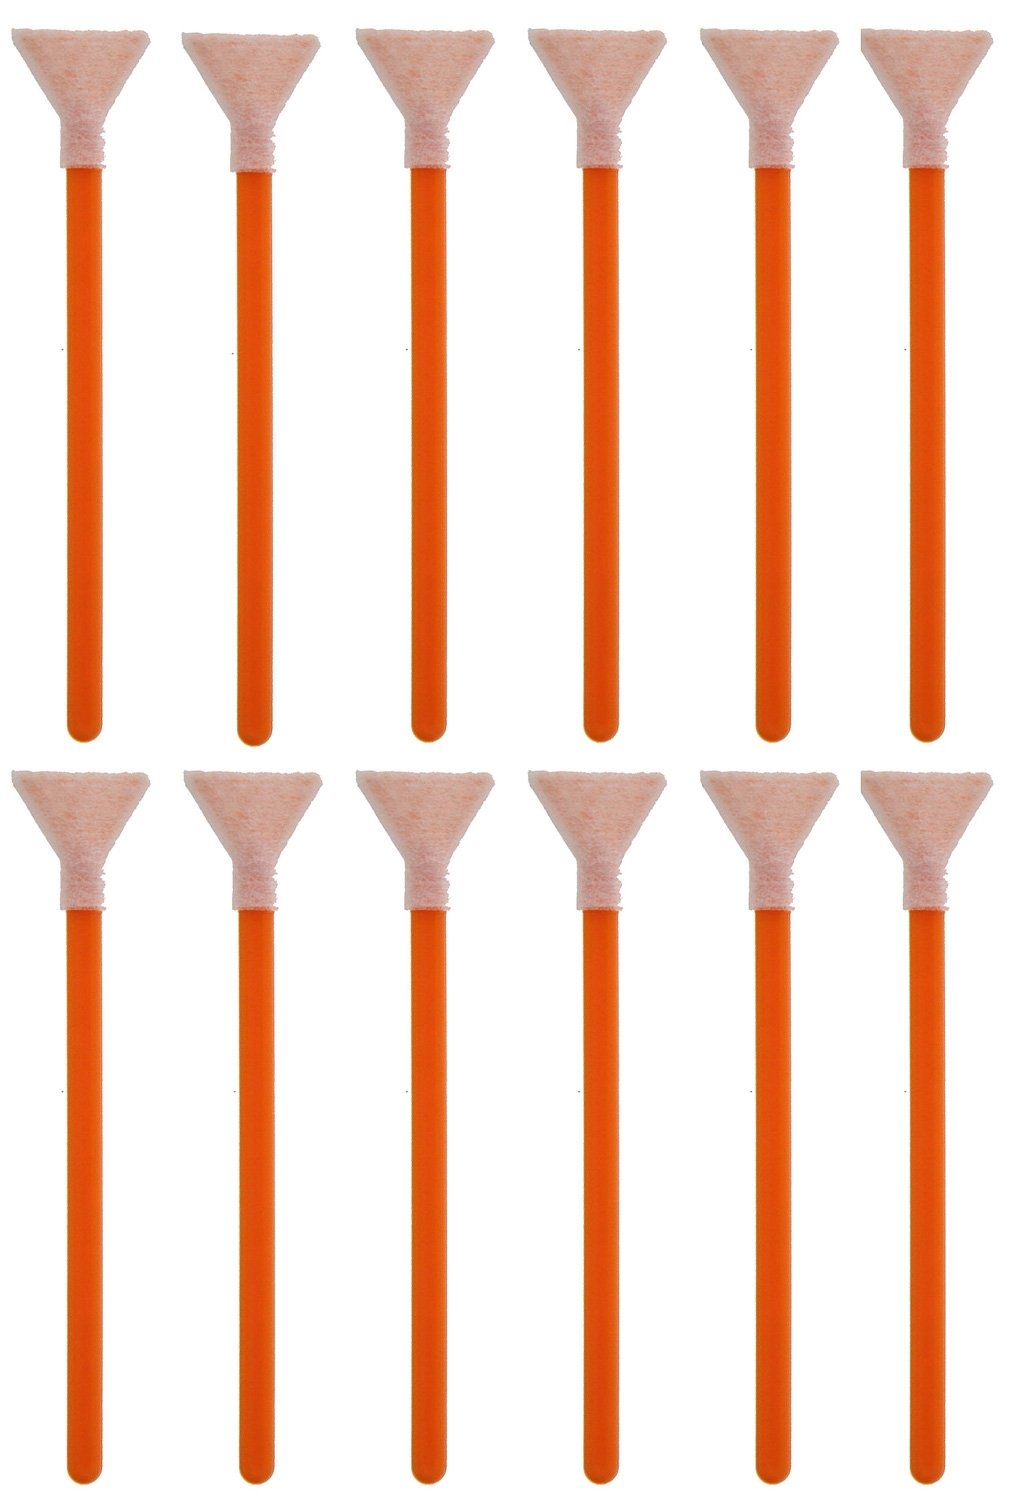 VisibleDust sensor cleaning swabs Vswab DHAP Orange 1.3x / 20 mm - 12 per pack V2863168